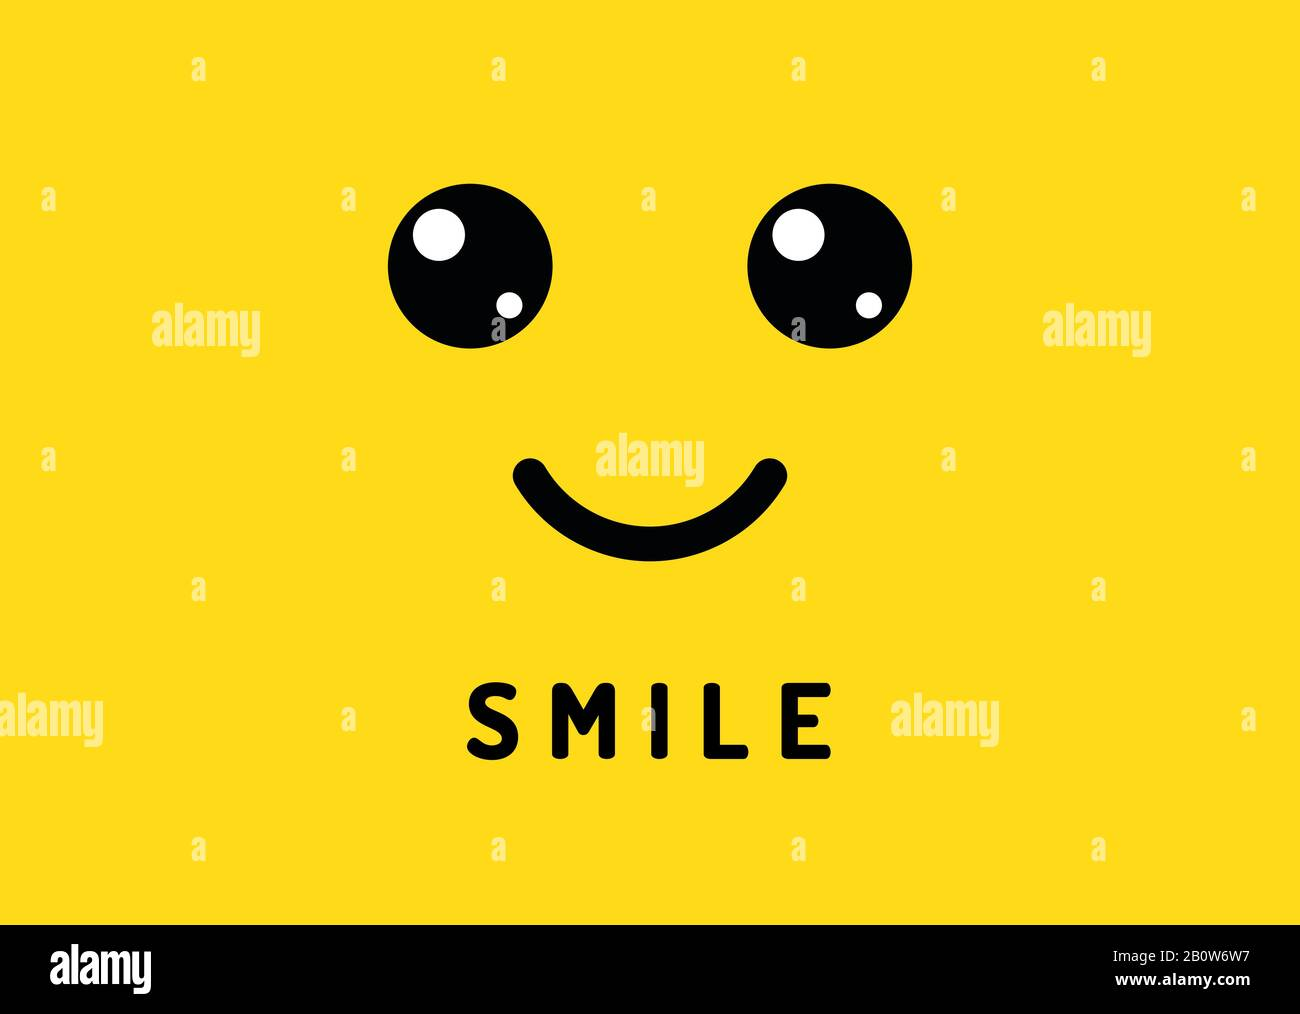 Happy Smile Smiling Face On Yellow Background Laughter Logo Funny Vector Banner Stock Vector Image Art Alamy